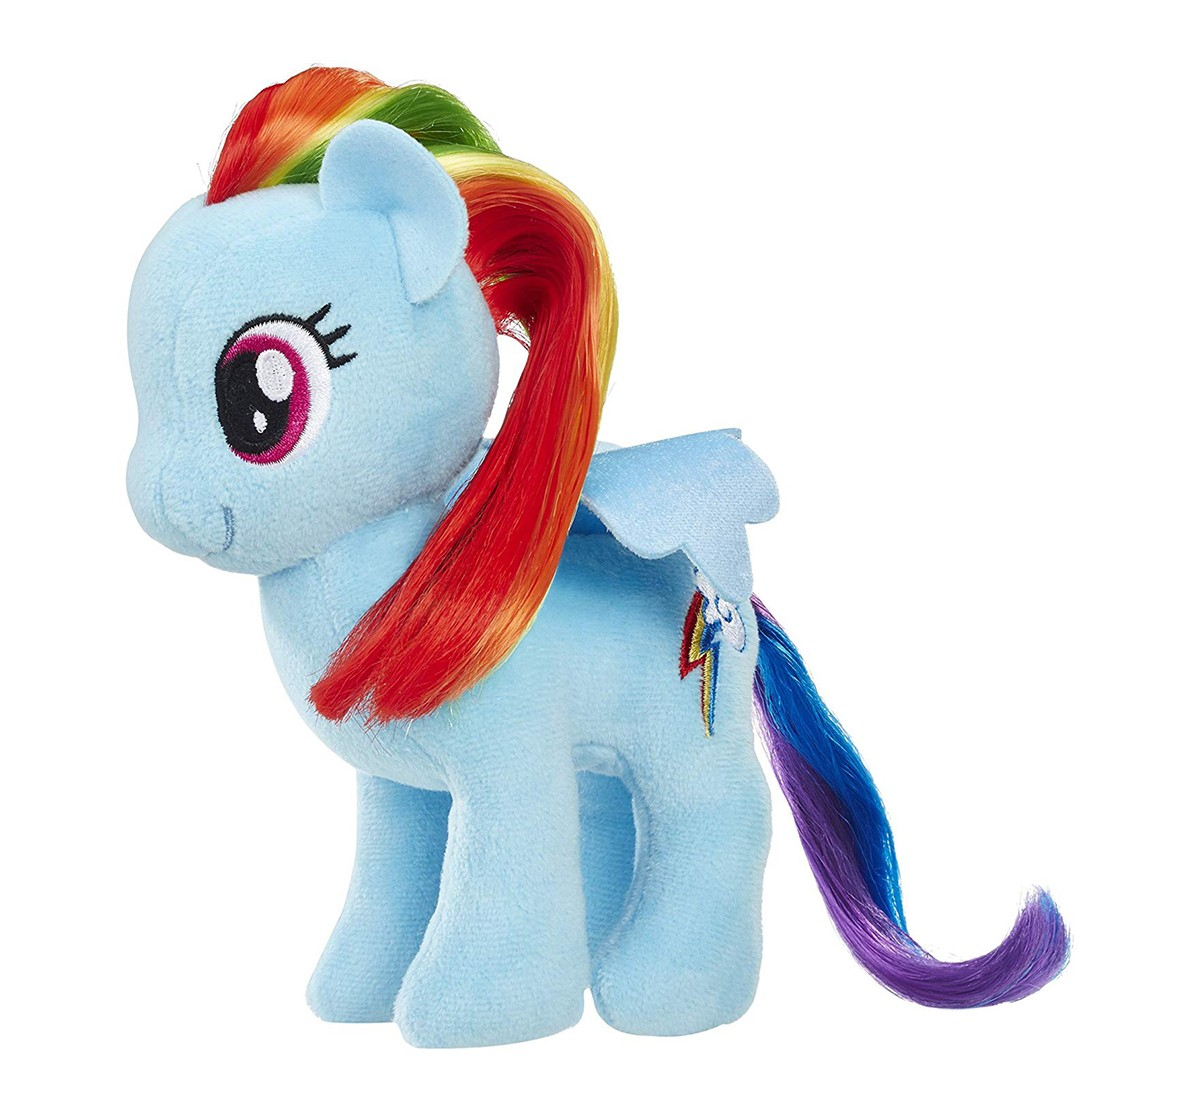 My Little Pony Rainbow Dash Fashion Dolls And Accessories Character Soft Toys for Kids age 0M+ - 17.8 Cm